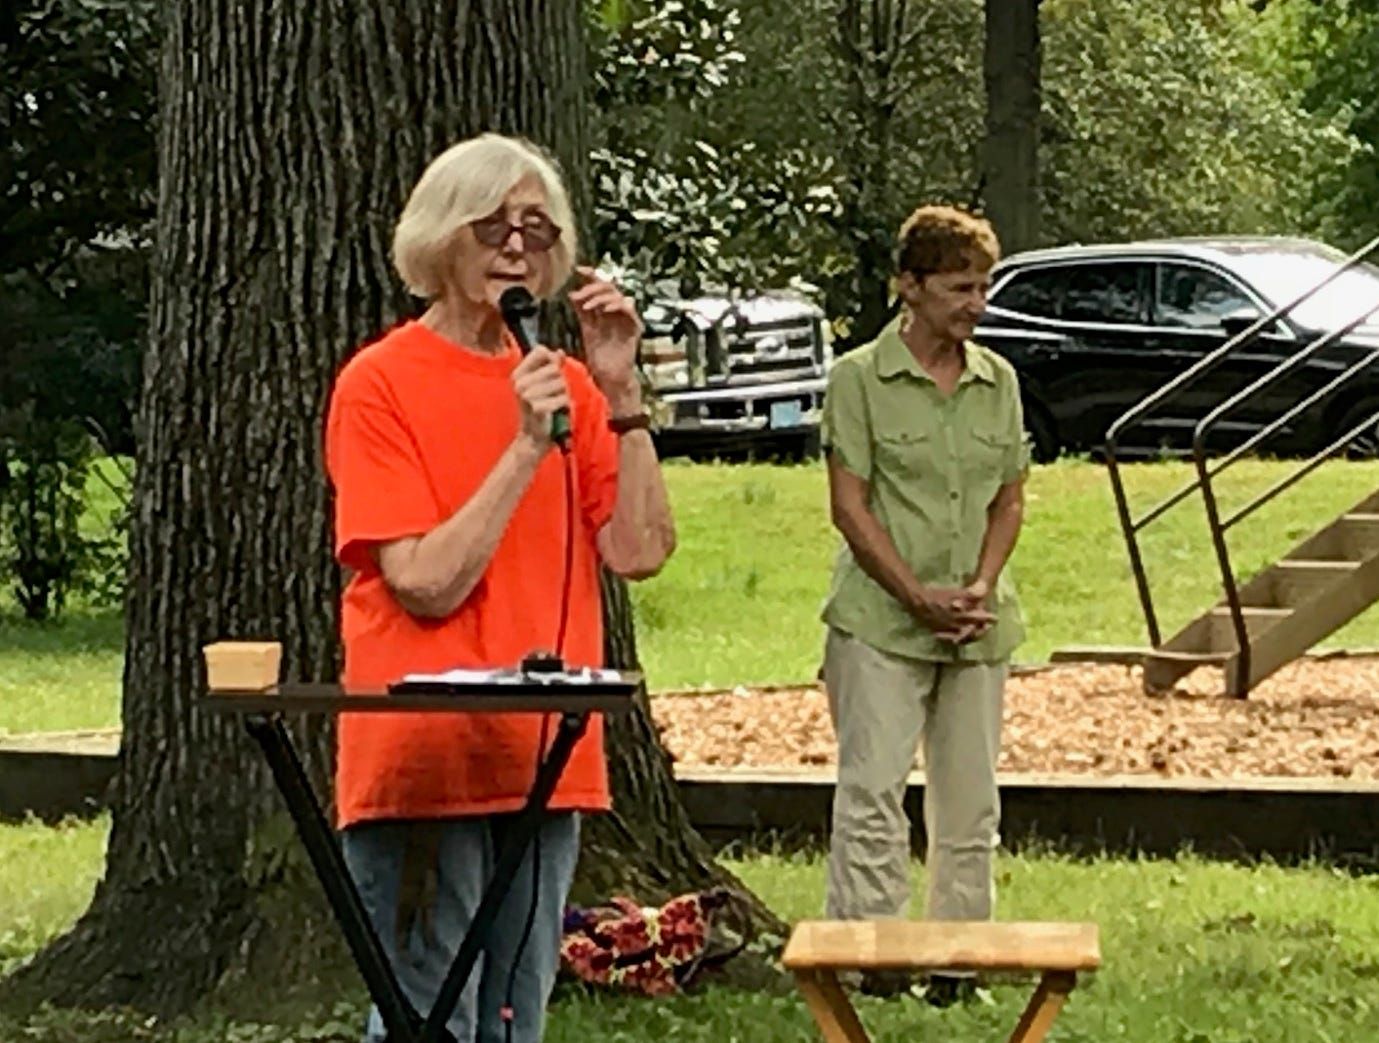 MaryEllen Chanda welcomes pet owners  to Sunday's Animal Initiative Committee's Celebration of Animals at Leland Avenue Park in Plainfield